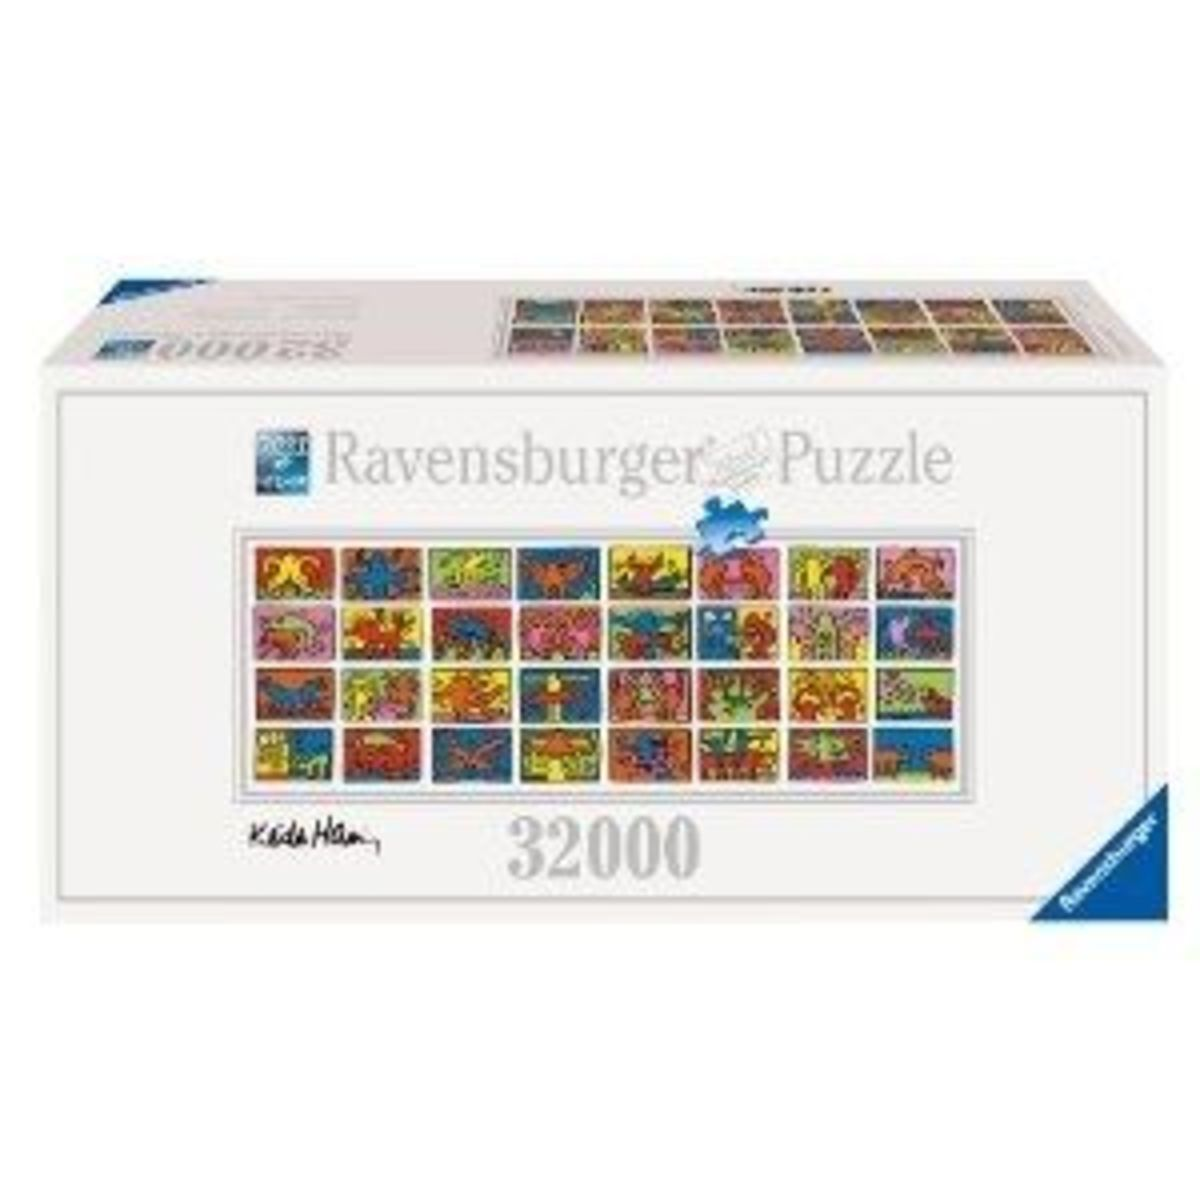 Ravensburger-32,000 pieces of True Family Fun!